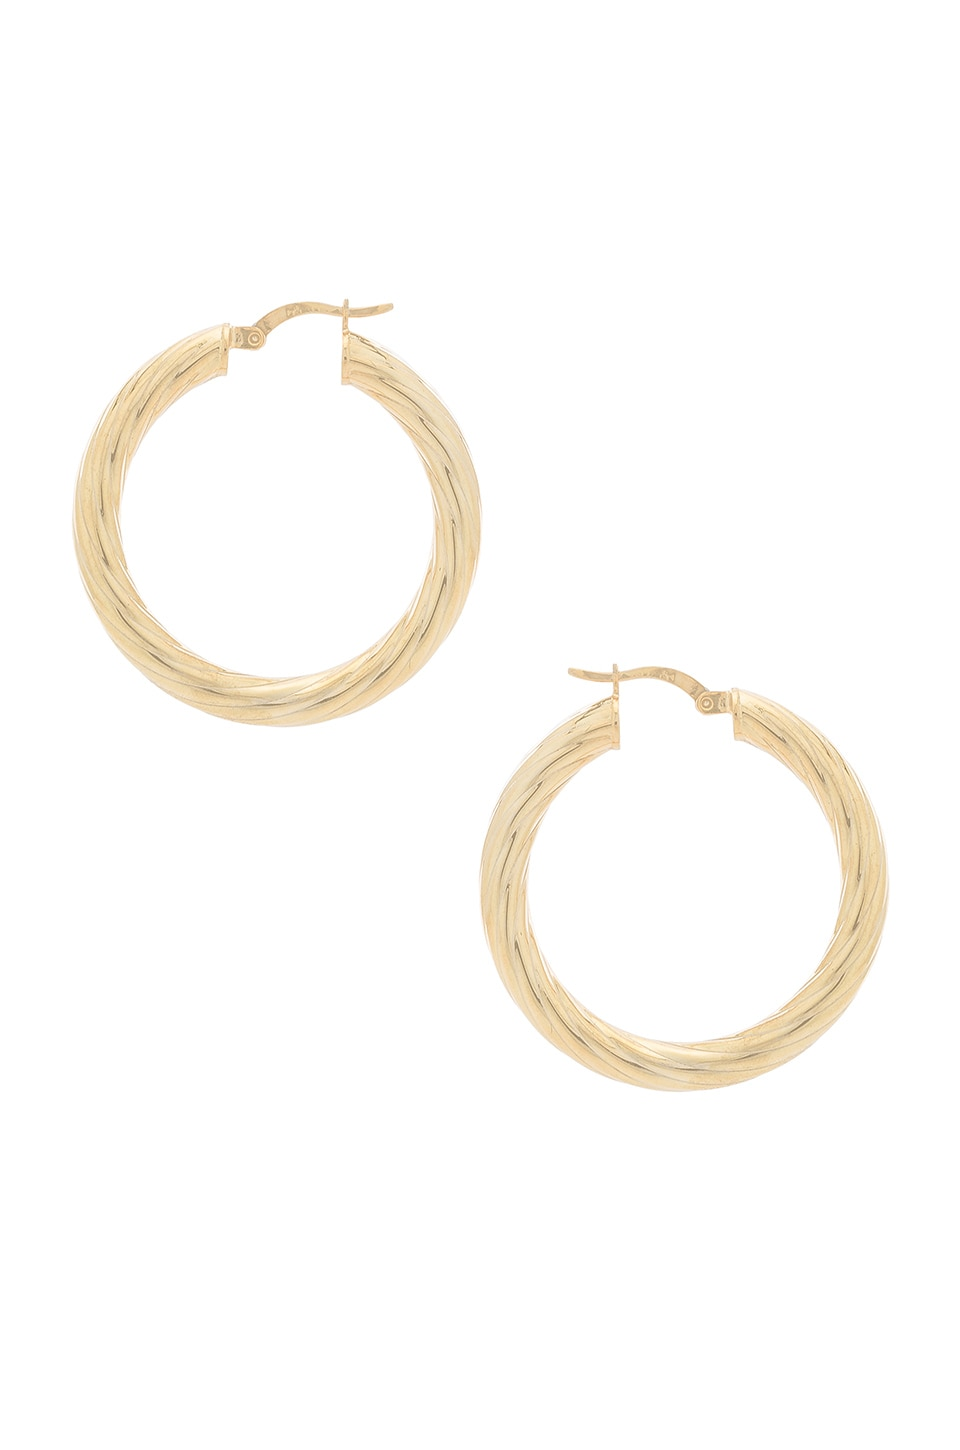 NATALIE B JEWELRY Halo Hoops in Metallic Gold